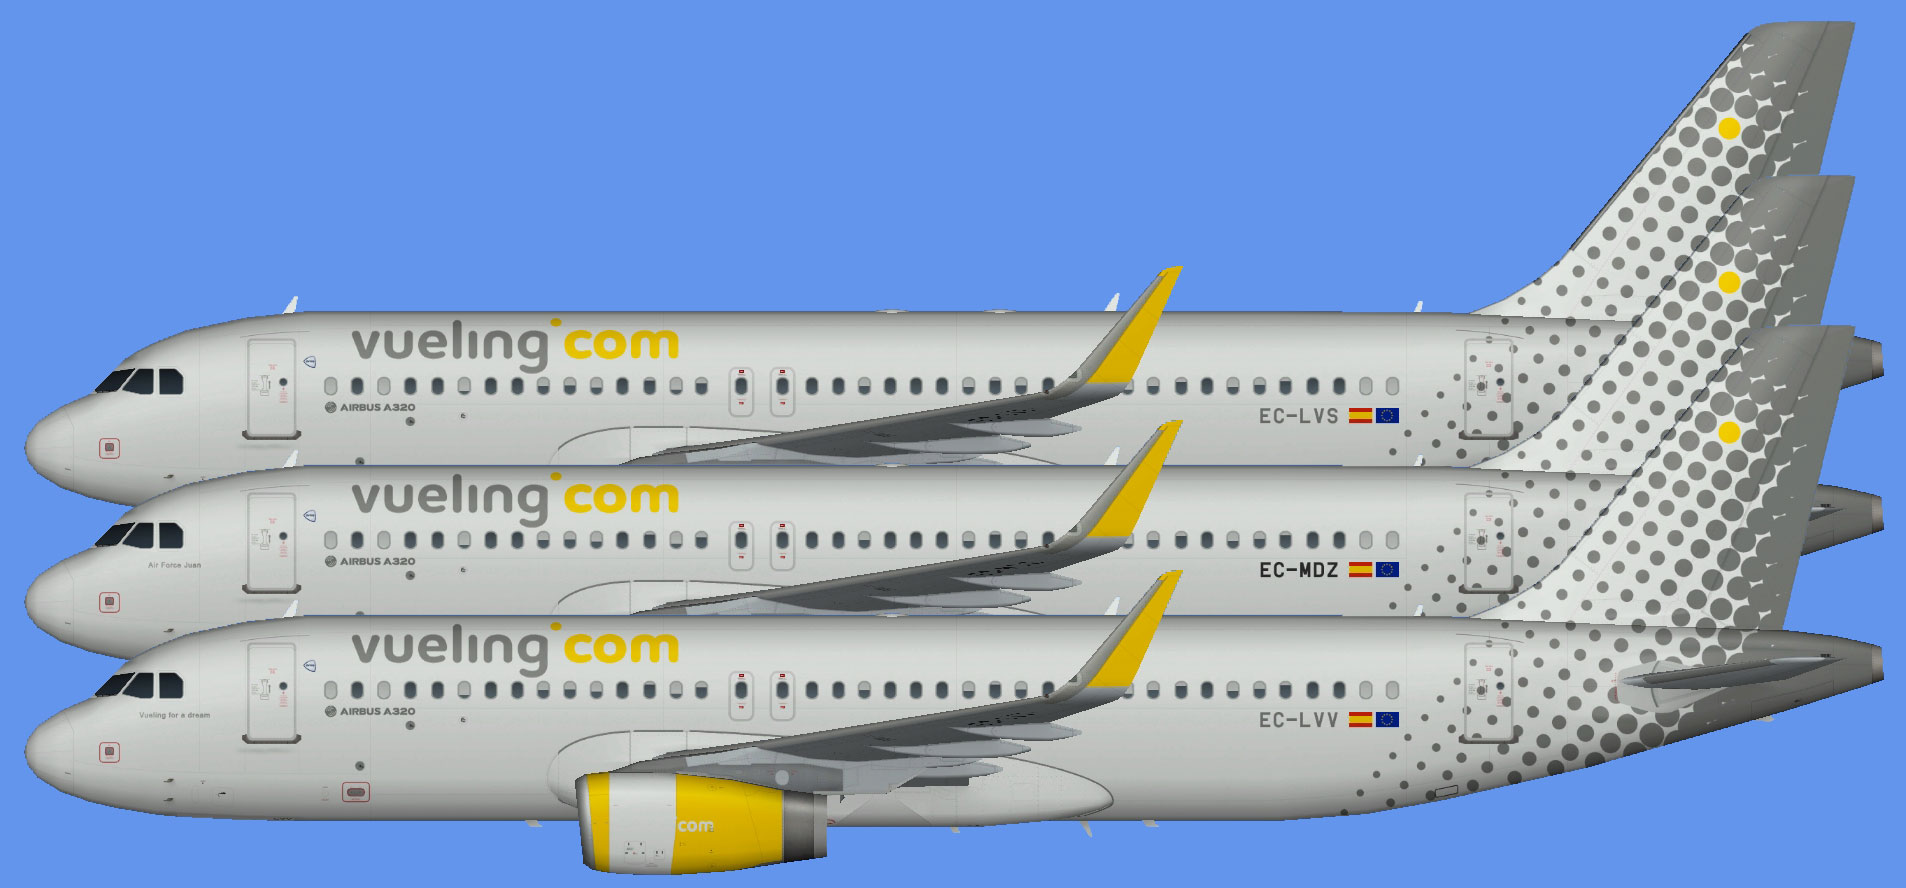 Vueling Airbus A321 The Flying Carpet Hub